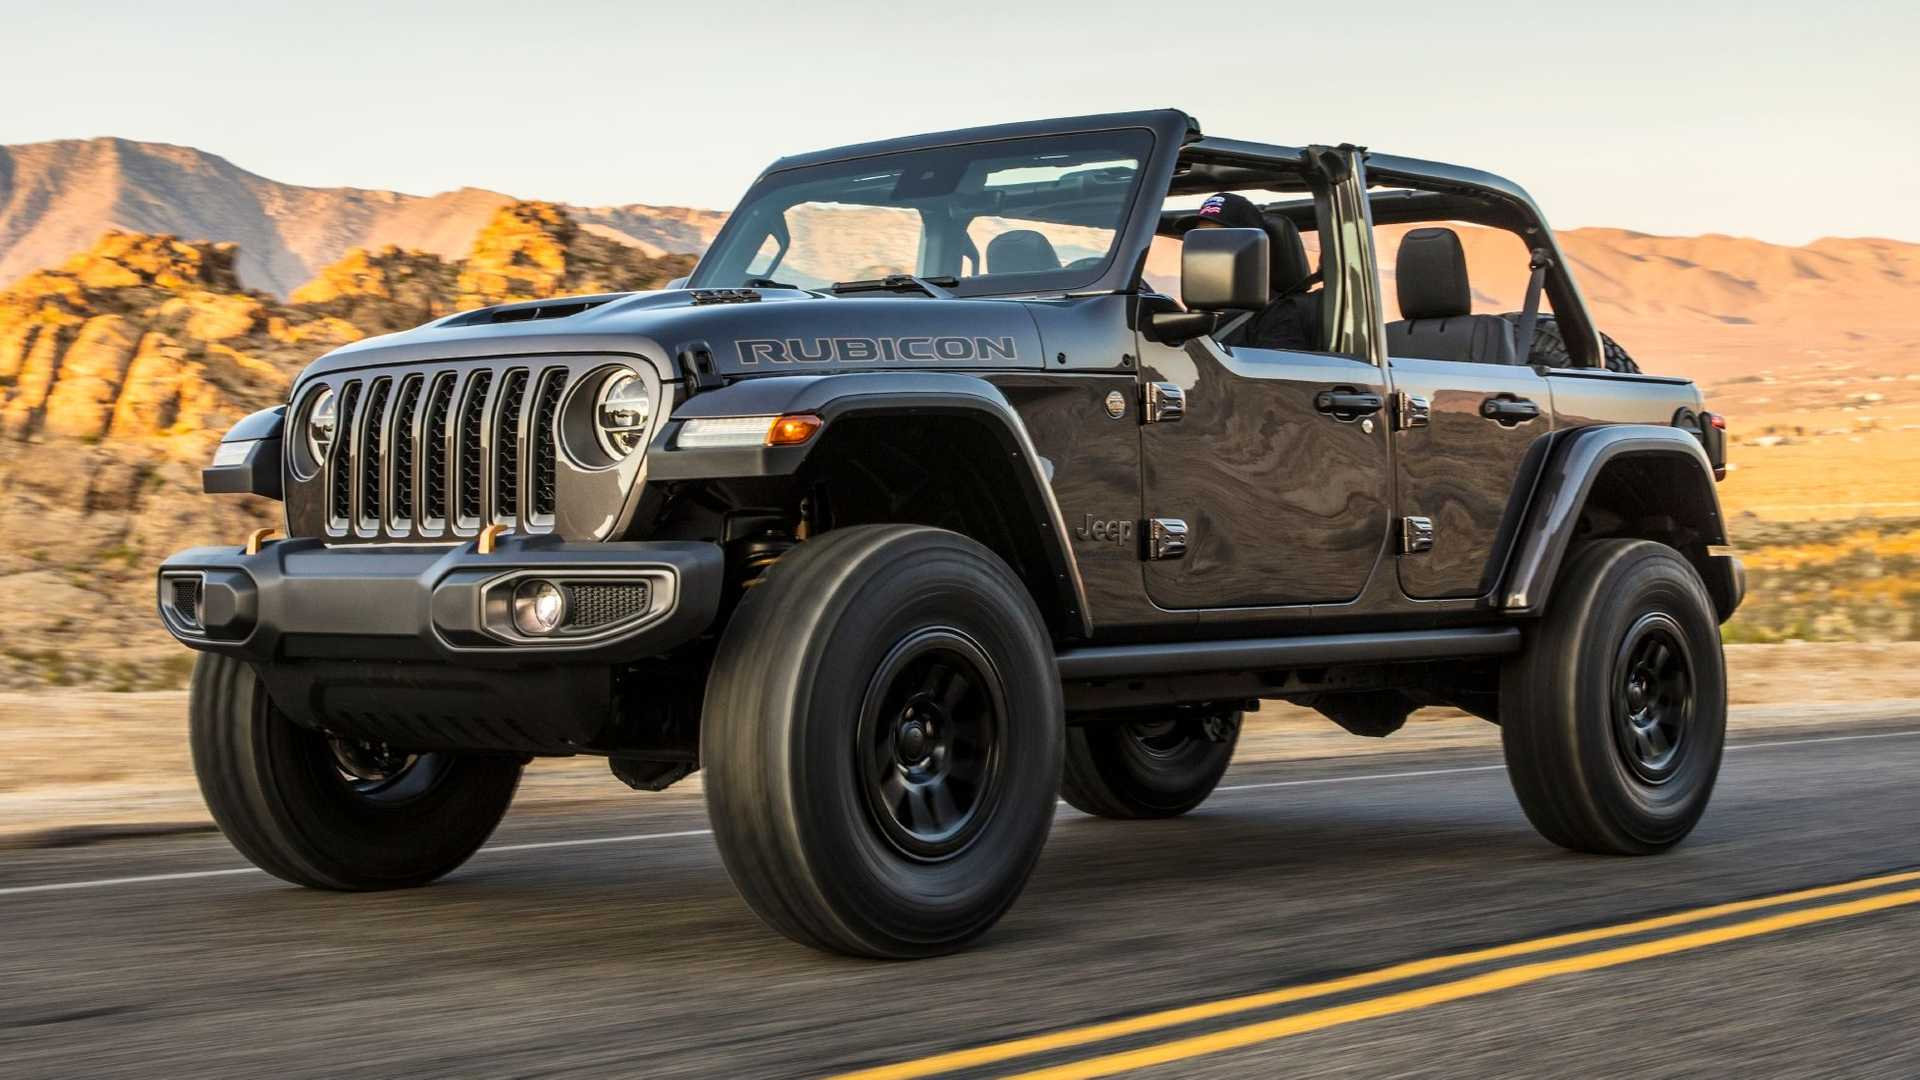 2021-jeep-wrangler-rubicon-392-front-view-13